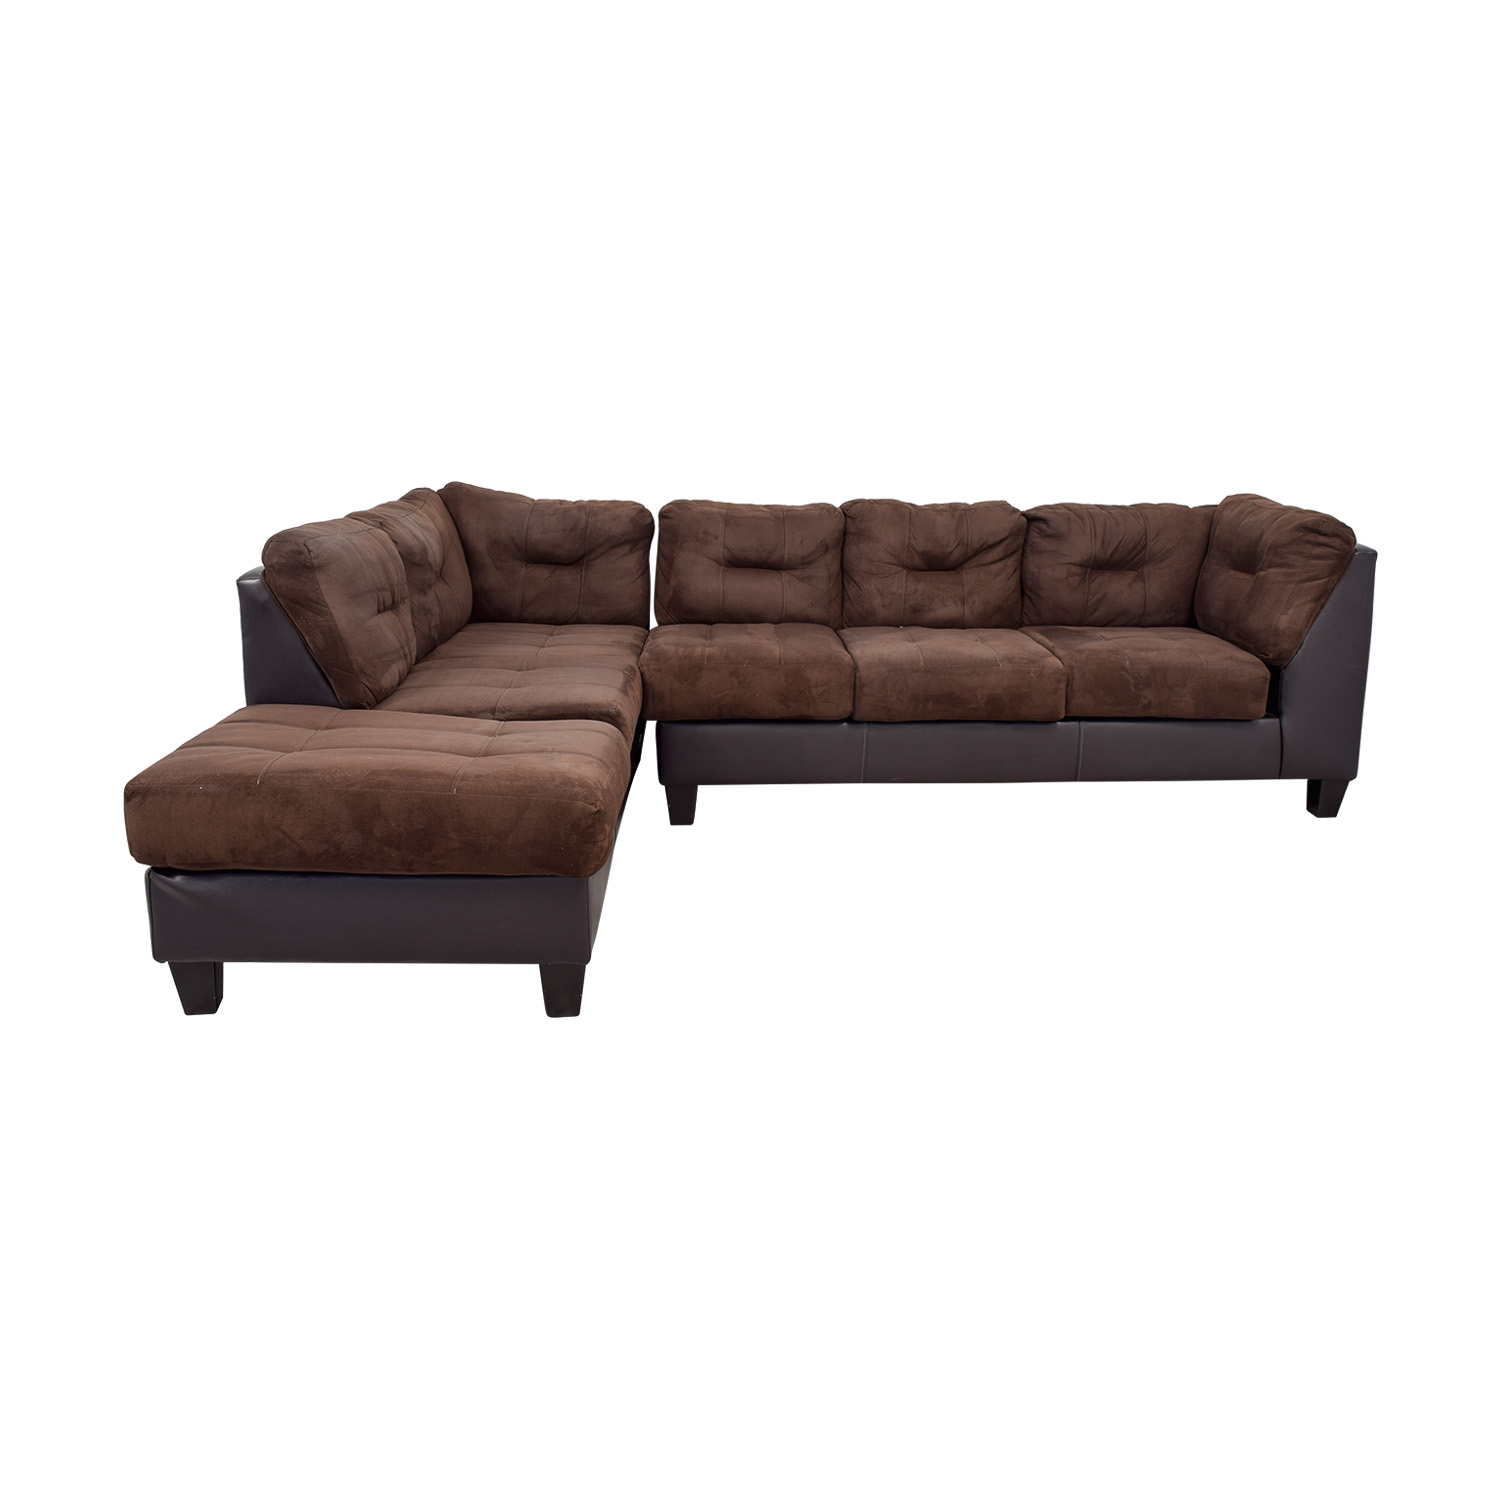 84% OFF - Raymour & Flanigan Raymour & Flanigan Brown Tufted ...